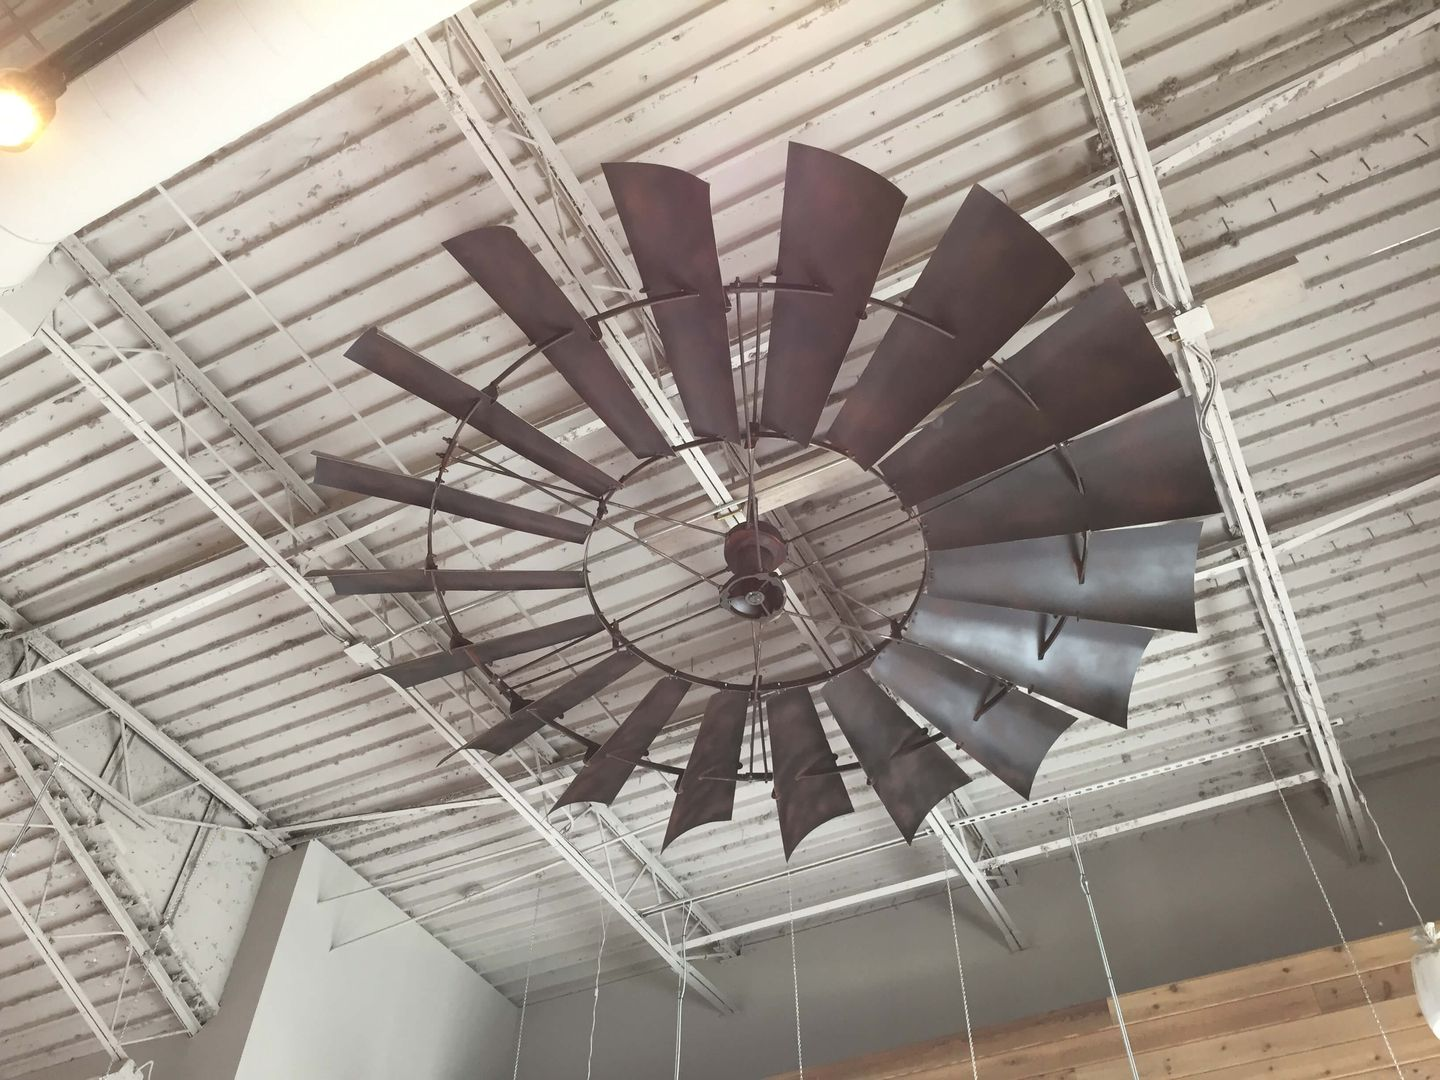 Windmill Ceiling Fans Of Texas Windmill Ceiling Fans Ceiling Fan Pinterest Windmill